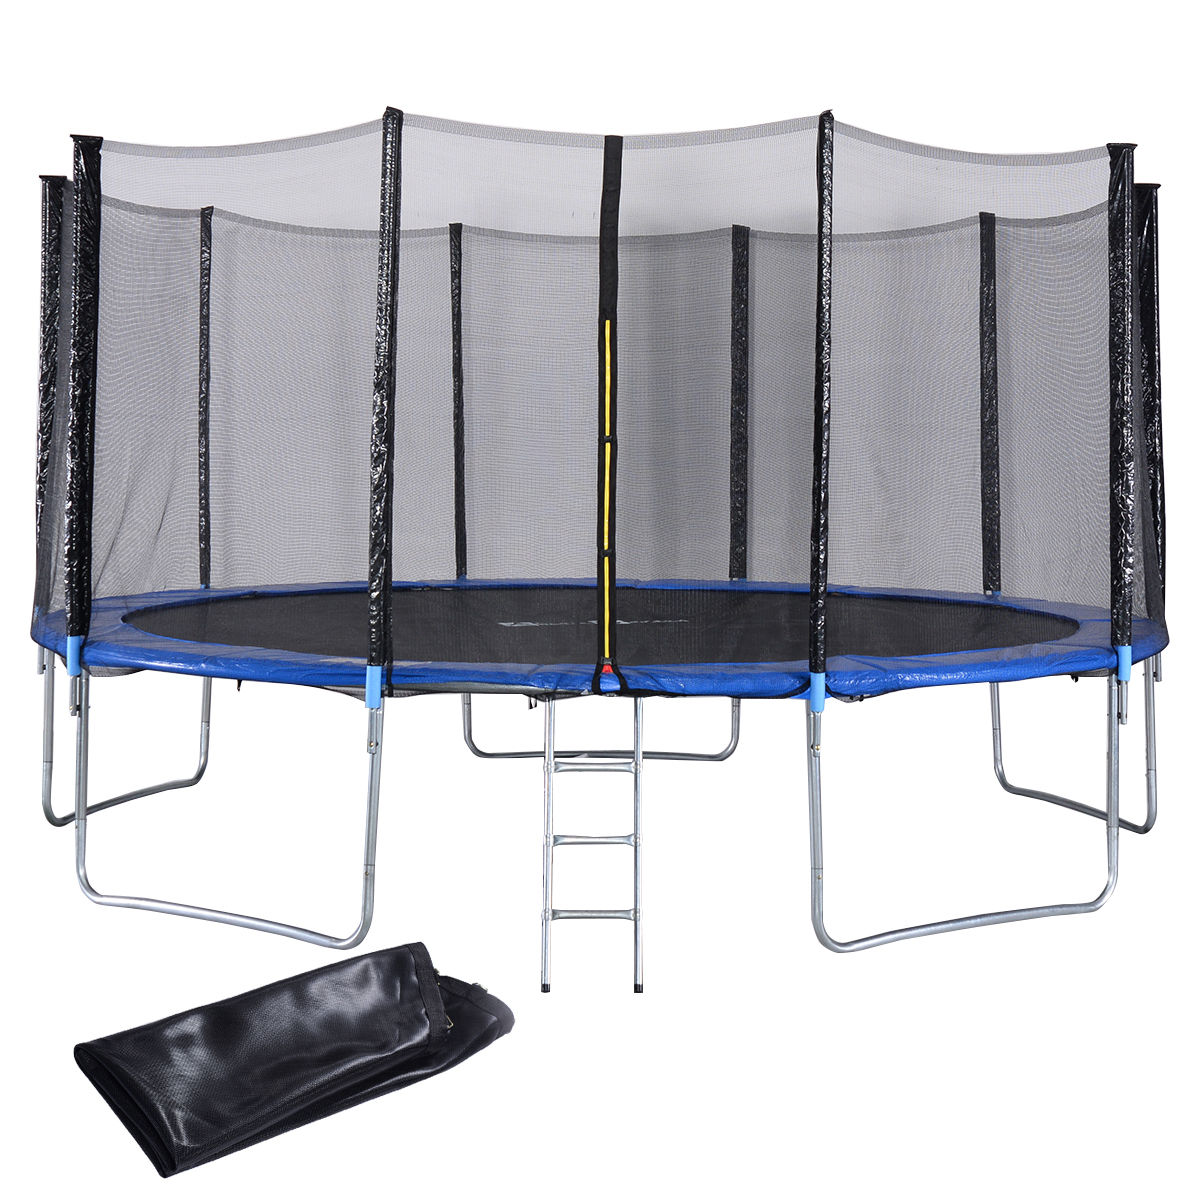 15 ft Trampoline Combo w/ Safety Enclosure Net, Spring Pad, Ladder & Rain Cover